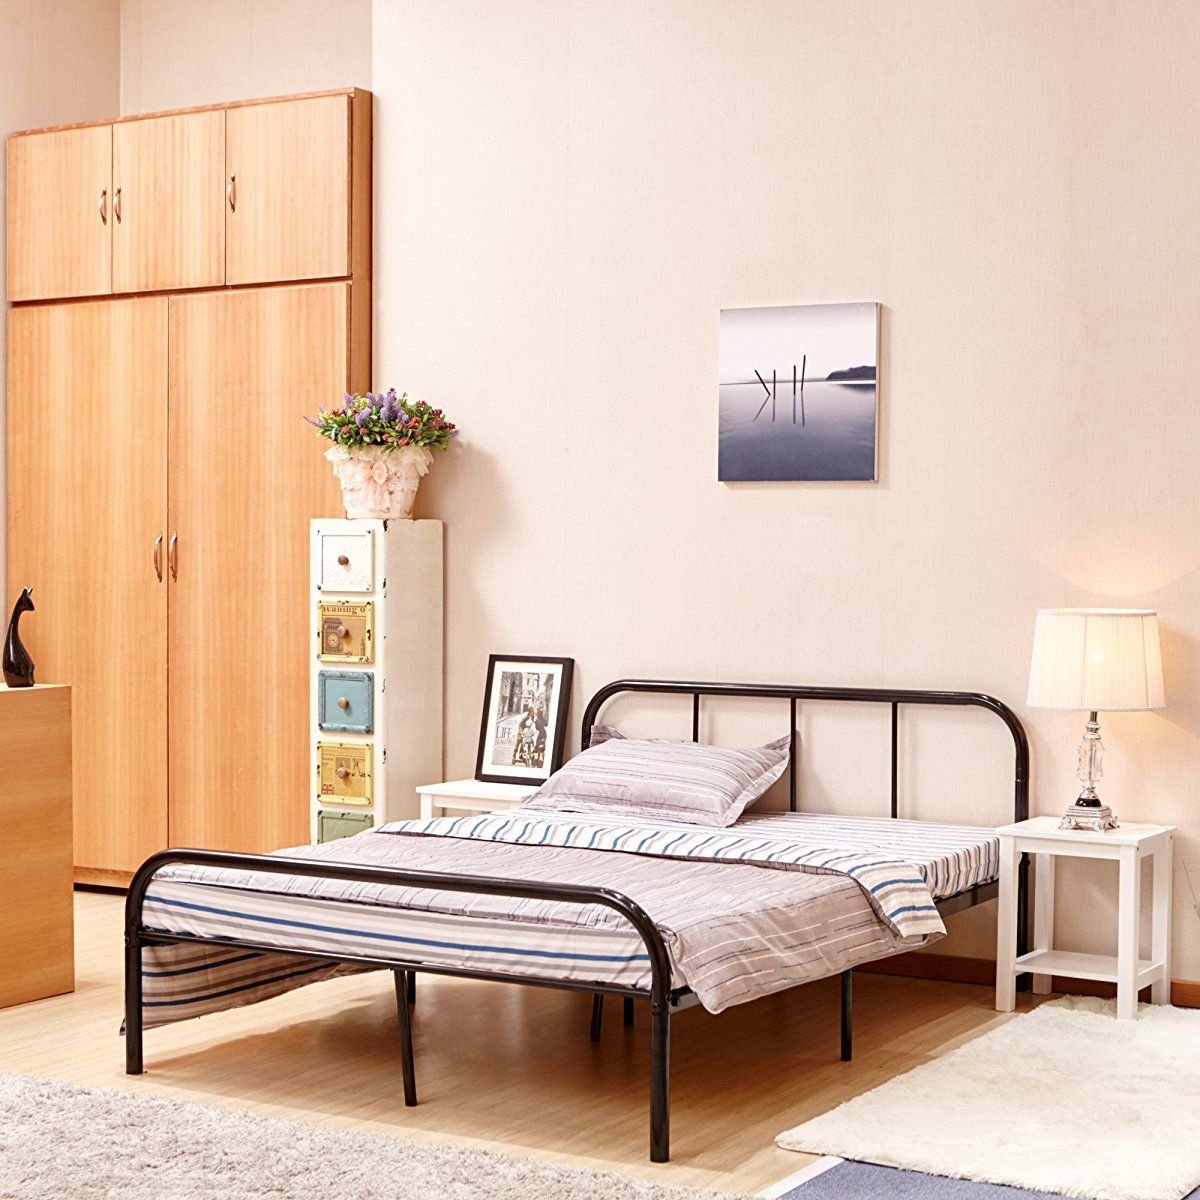 Bed Frame With Headboard And Stable Metal Slats Black Black Bed Frame Bed Frame Metal Bed Frame